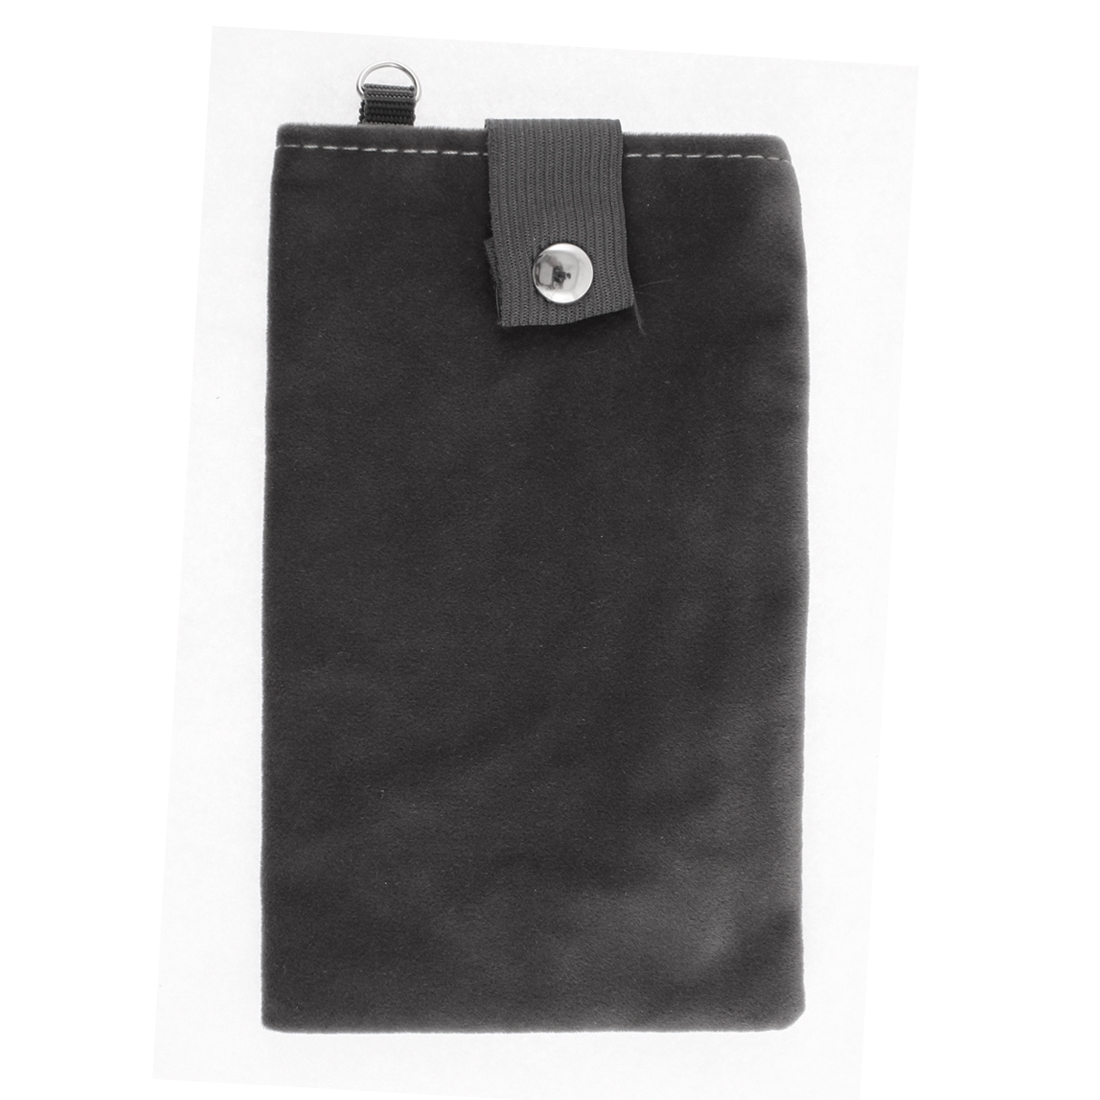 Velvet Magnetic Clasp Button Cell Phone Pouch Sleeve Bag Black Gray 18x11cm